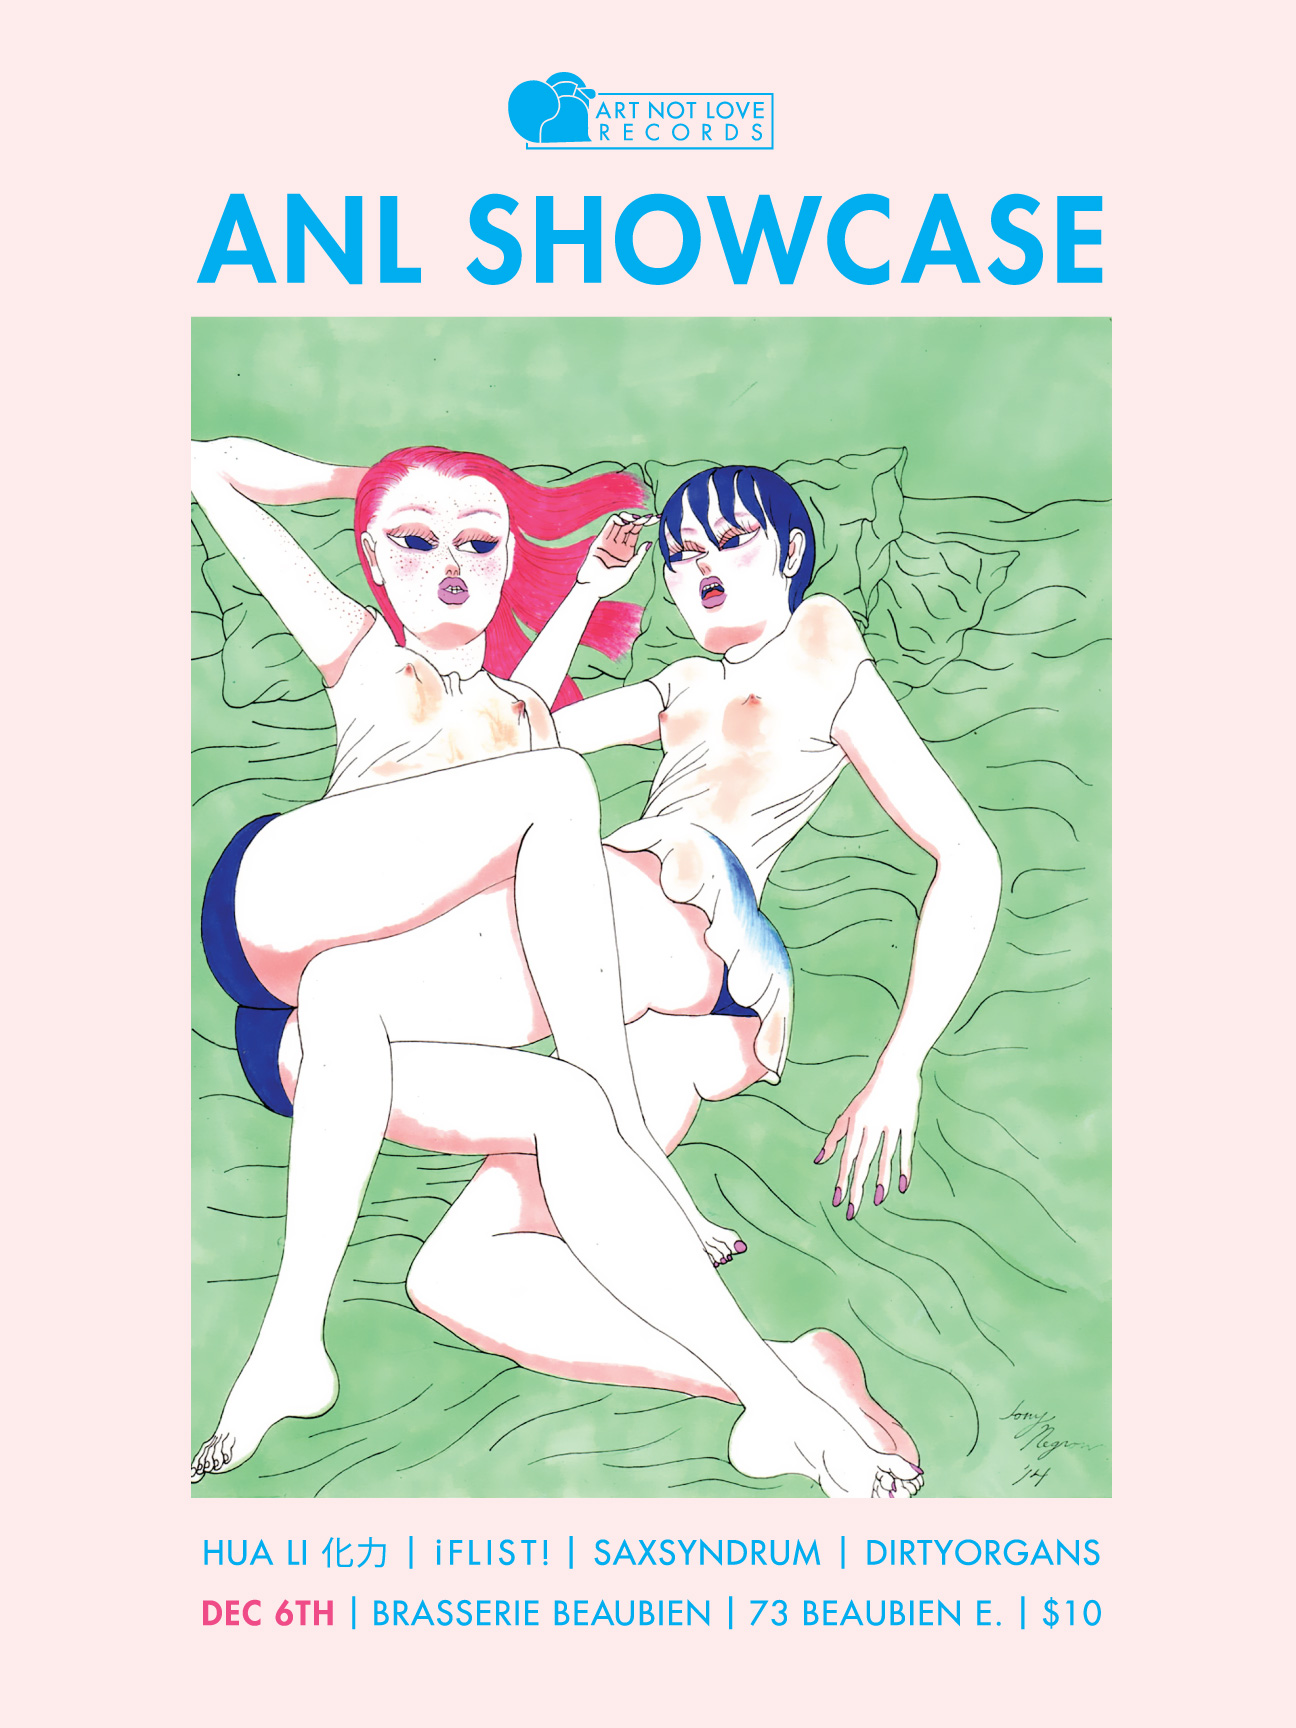 ANL-Showcase-Dec-6th-2014